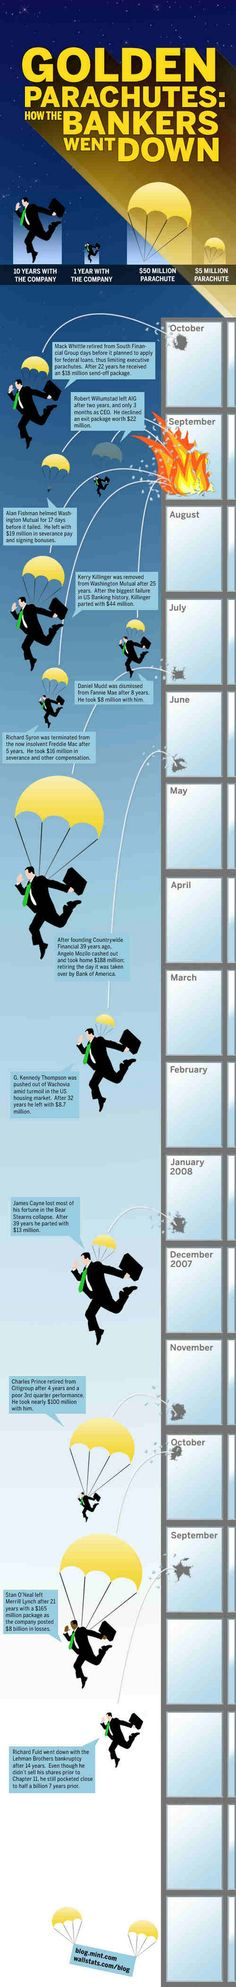 Golden Parachutes: How the Bankers Went Down